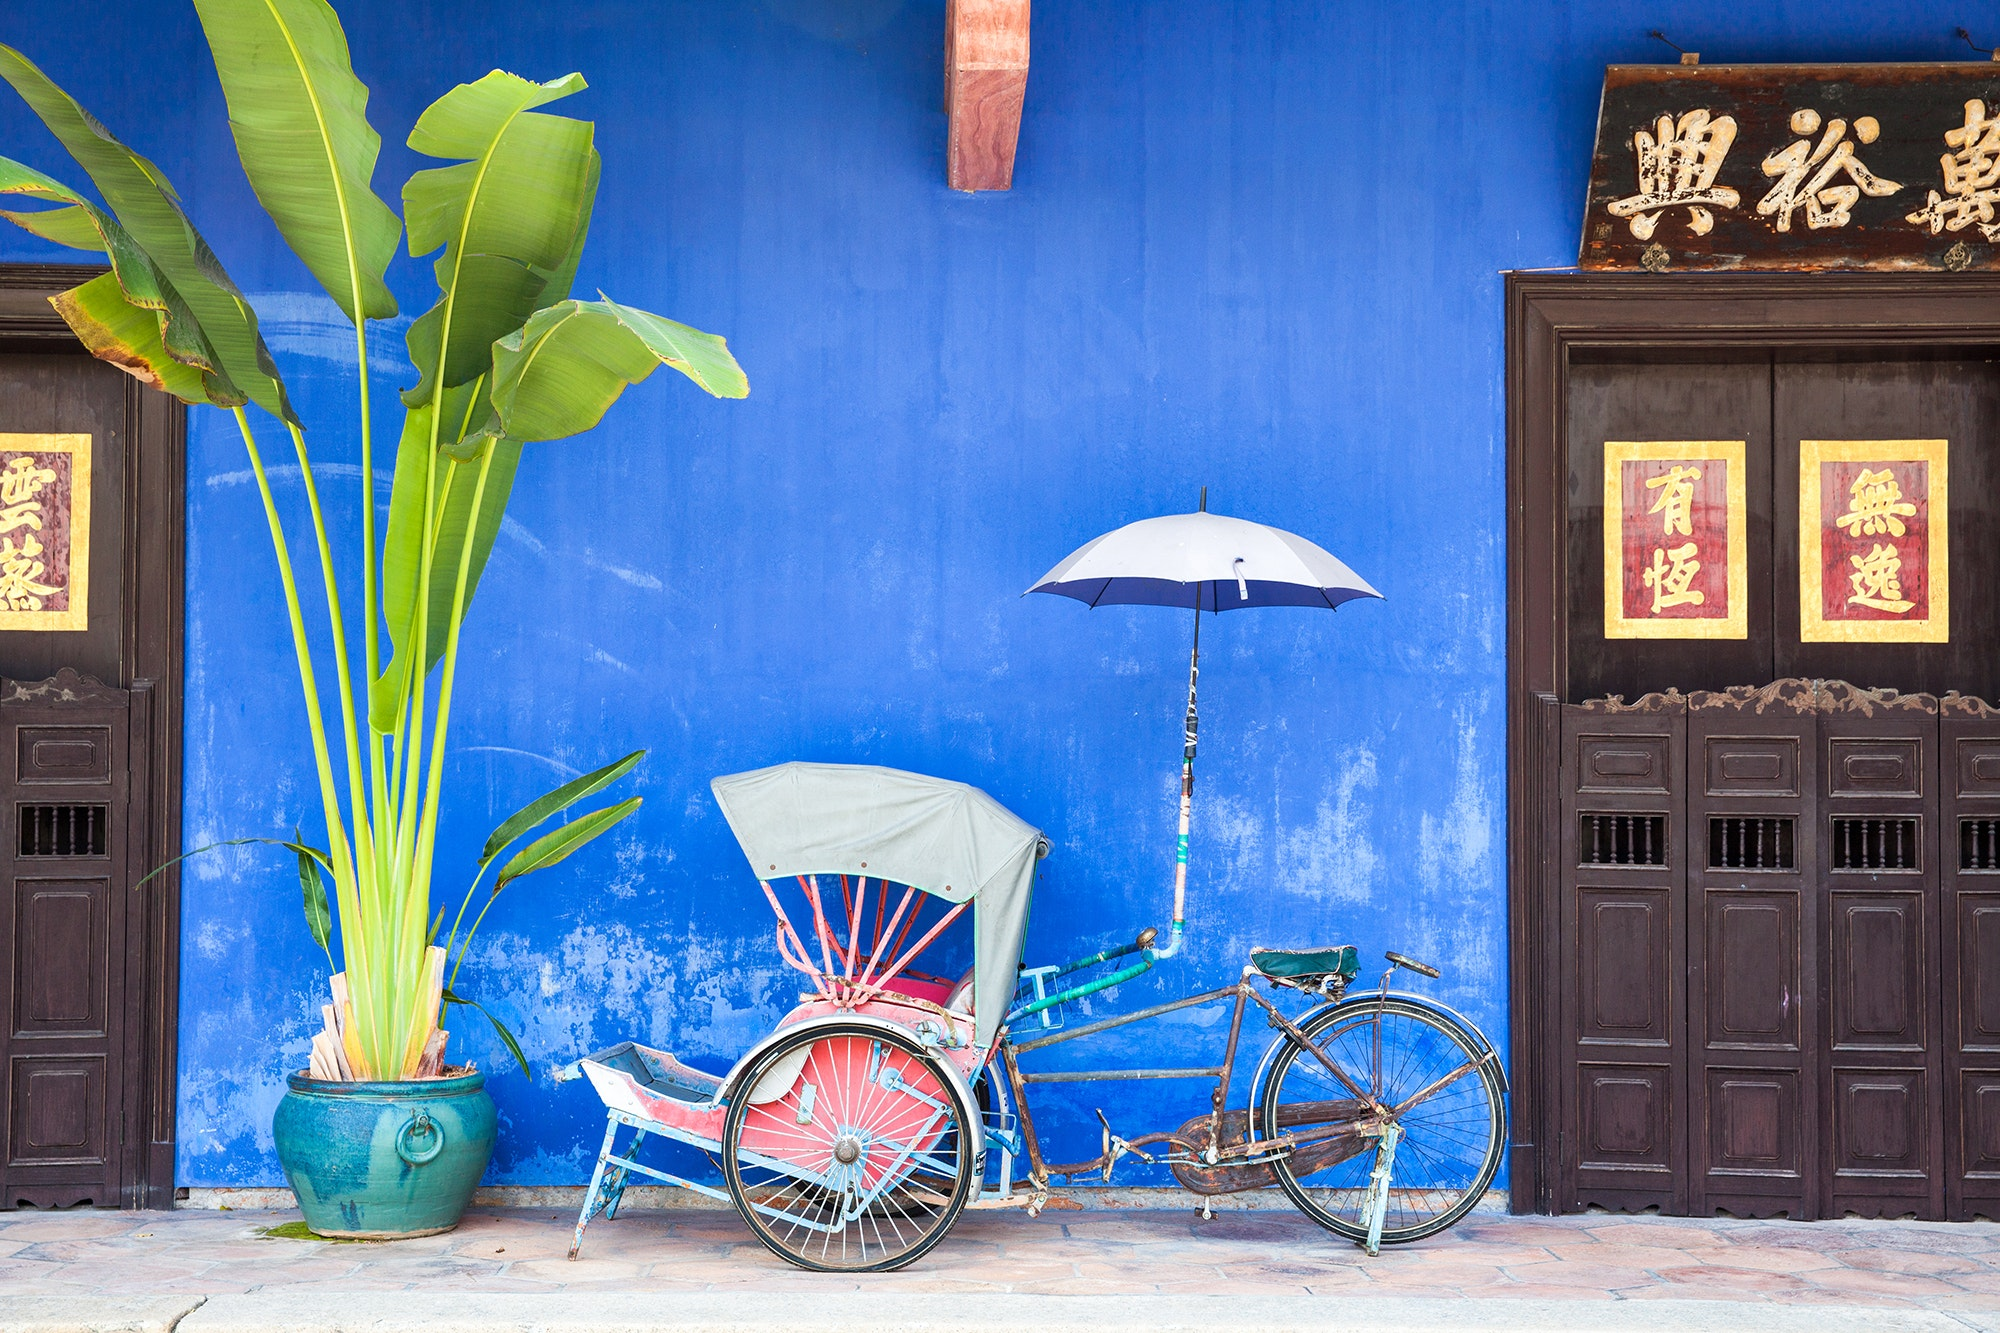 An old rickshaw tricycle near Cheong Fatt Tze Mansion in George Town on Penang Island